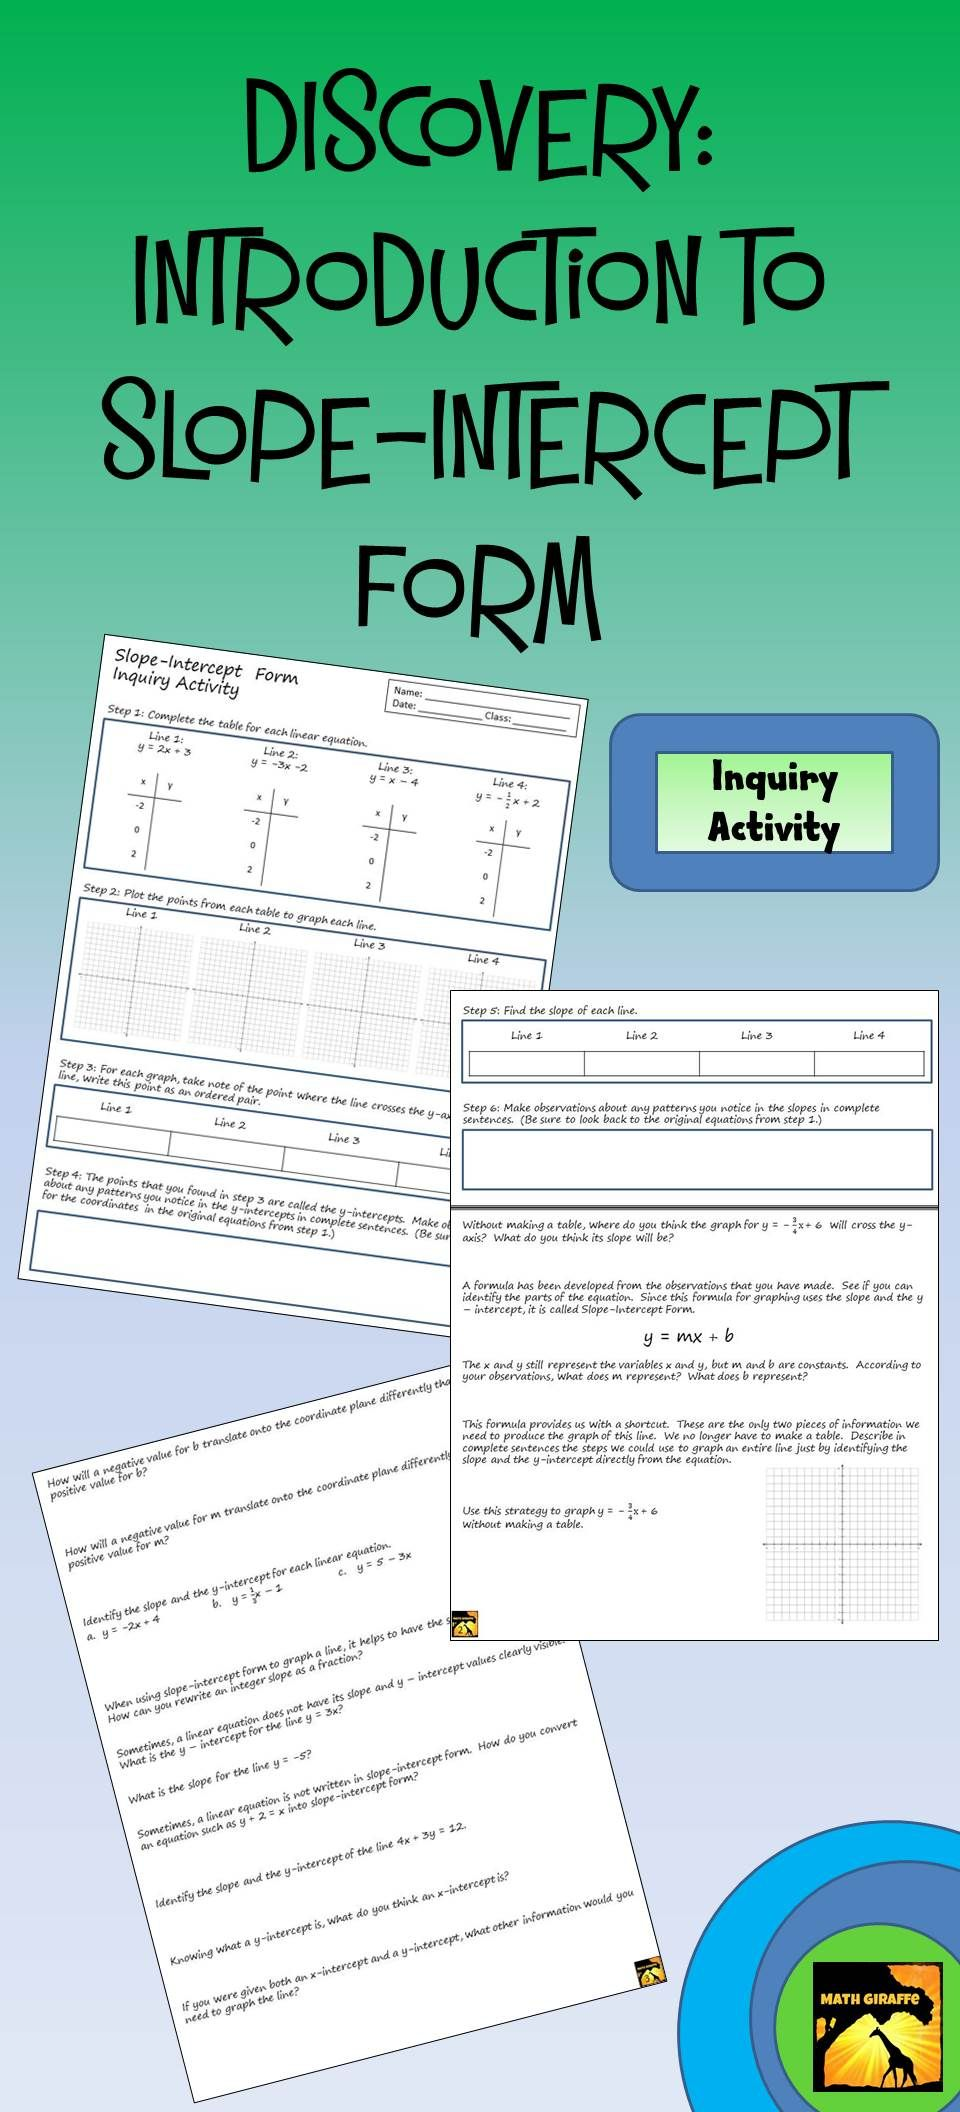 worksheet Introduction To Slope Worksheet slope intercept form inquiry activity discovery students and math introducing to through guided based lesson